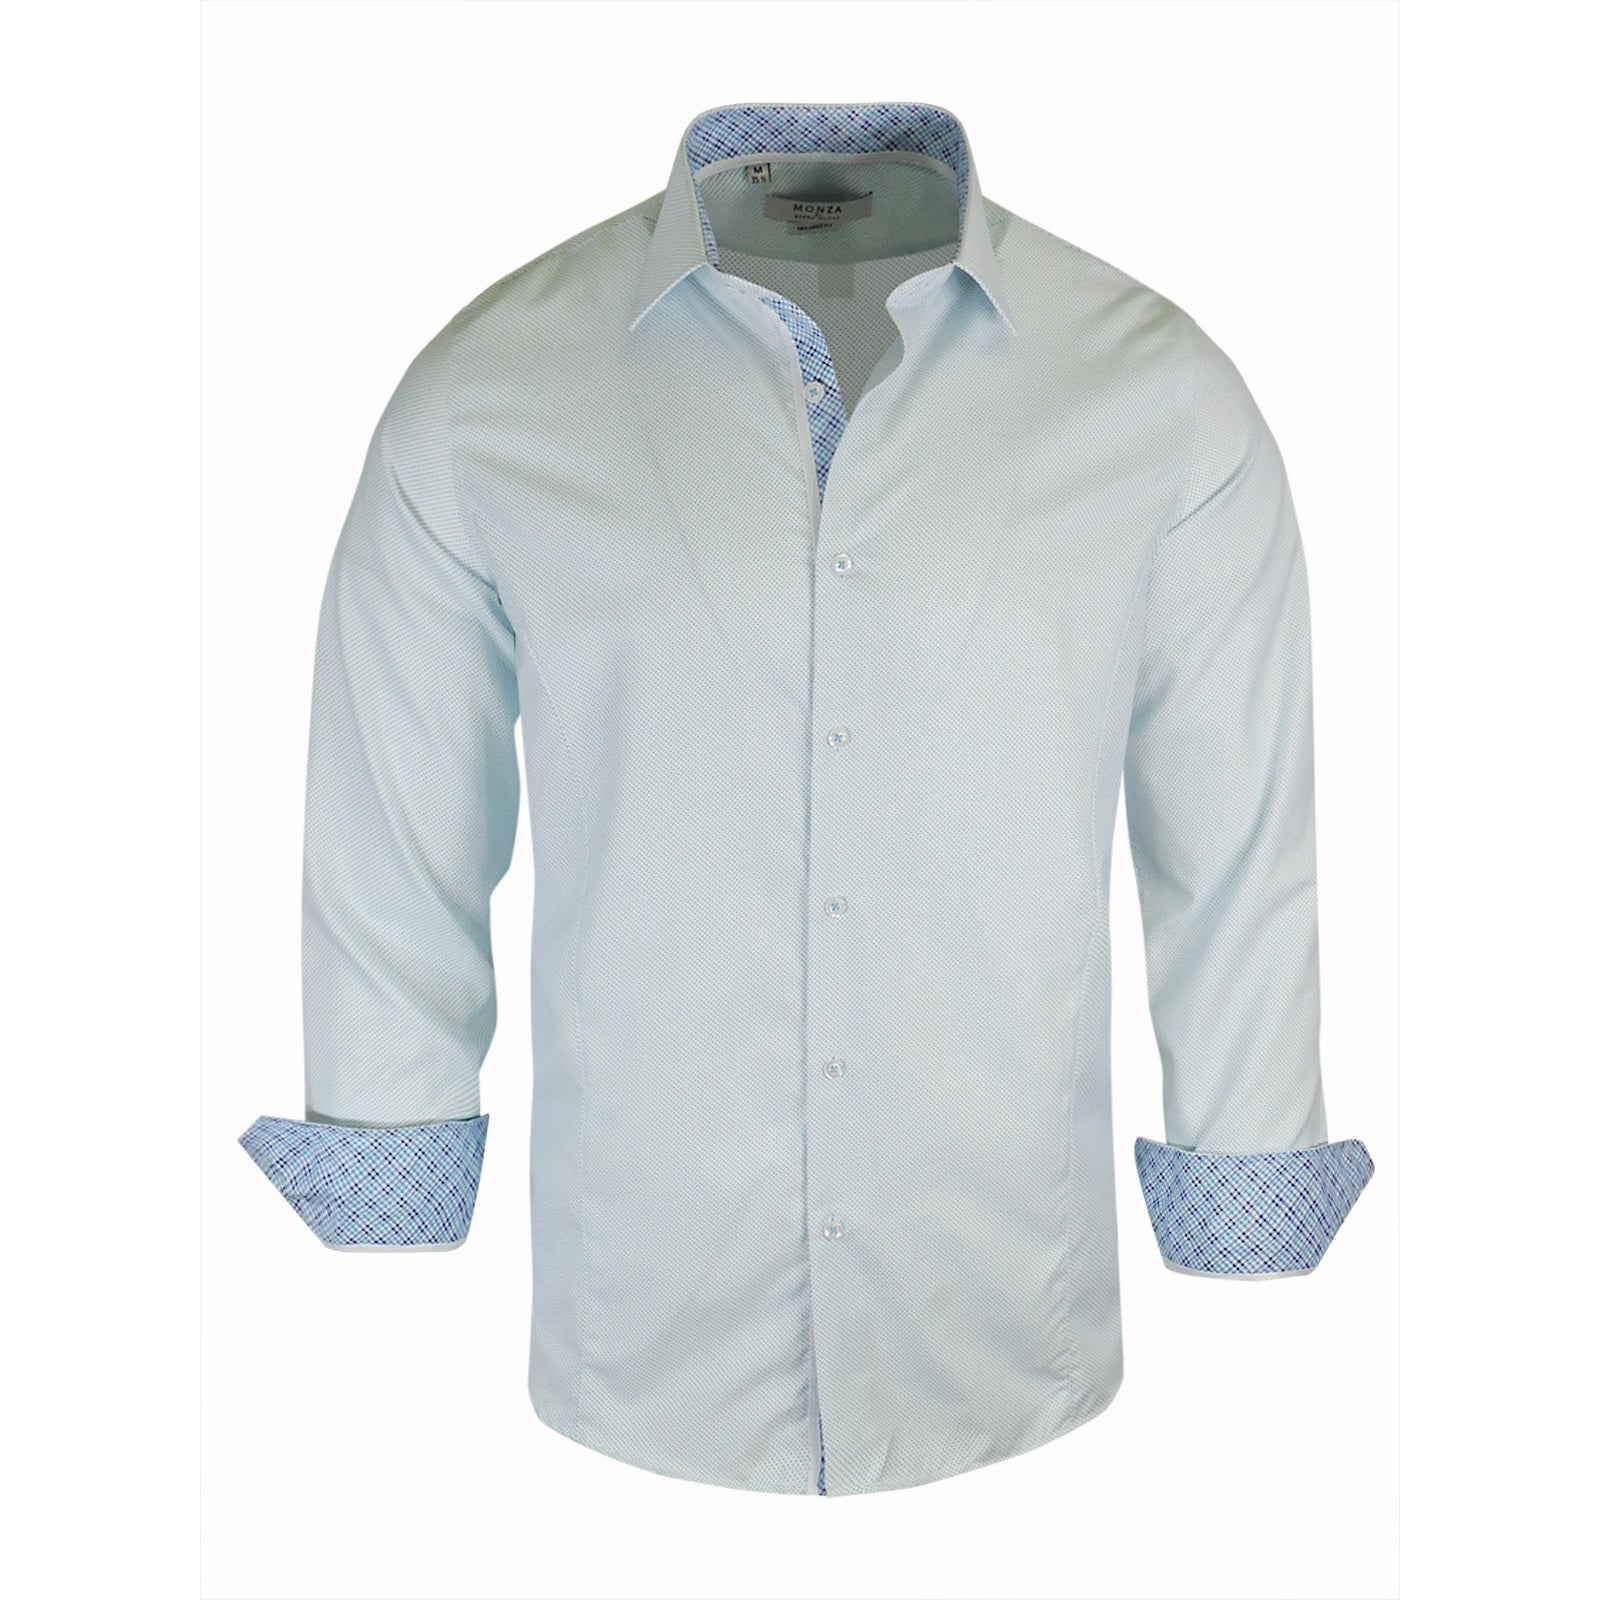 Shop Monza Polka Dots Tailored Fit Dress Shirt Free Shipping On